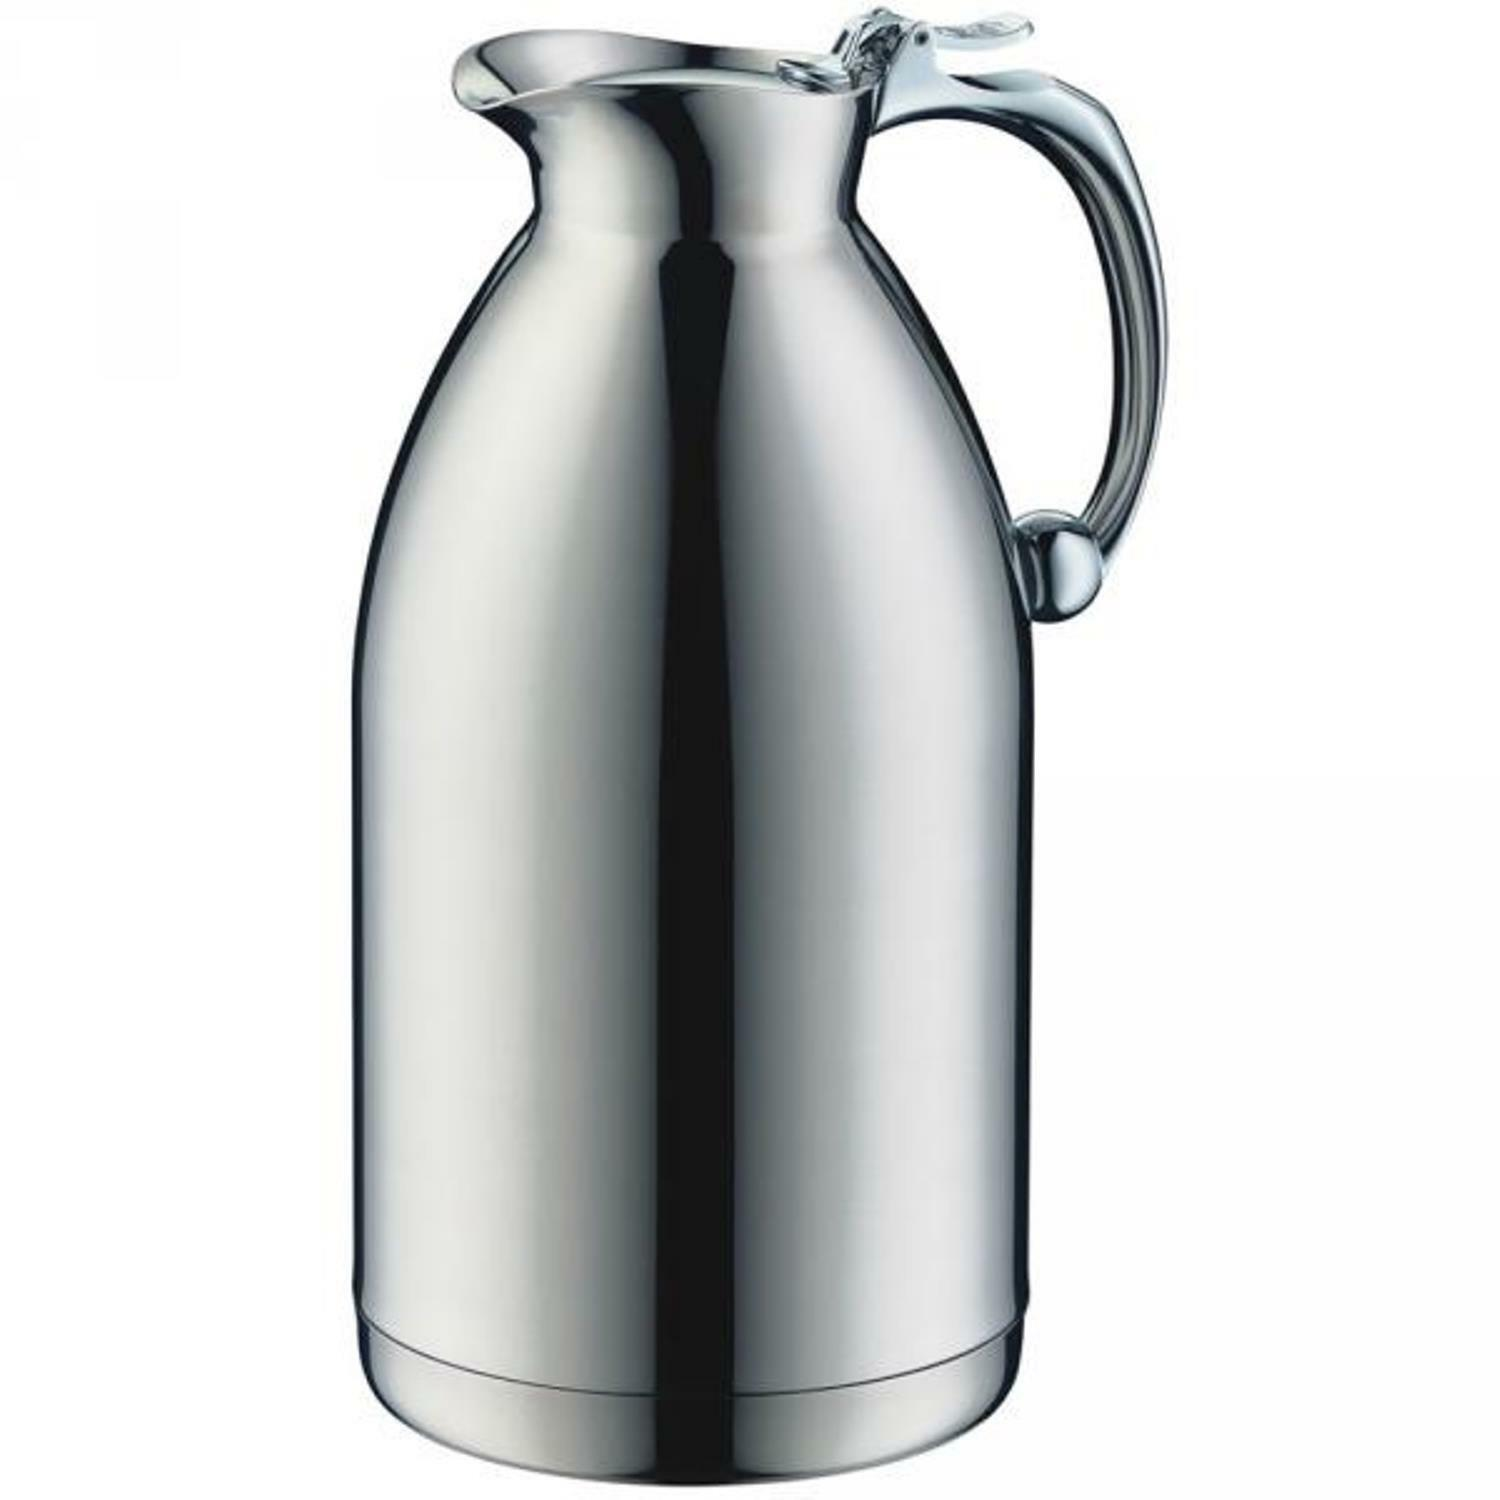 Genuine  ALFI Hotello 1.5L Stainless Steel Vacuum Insulated Double Wall Carafe